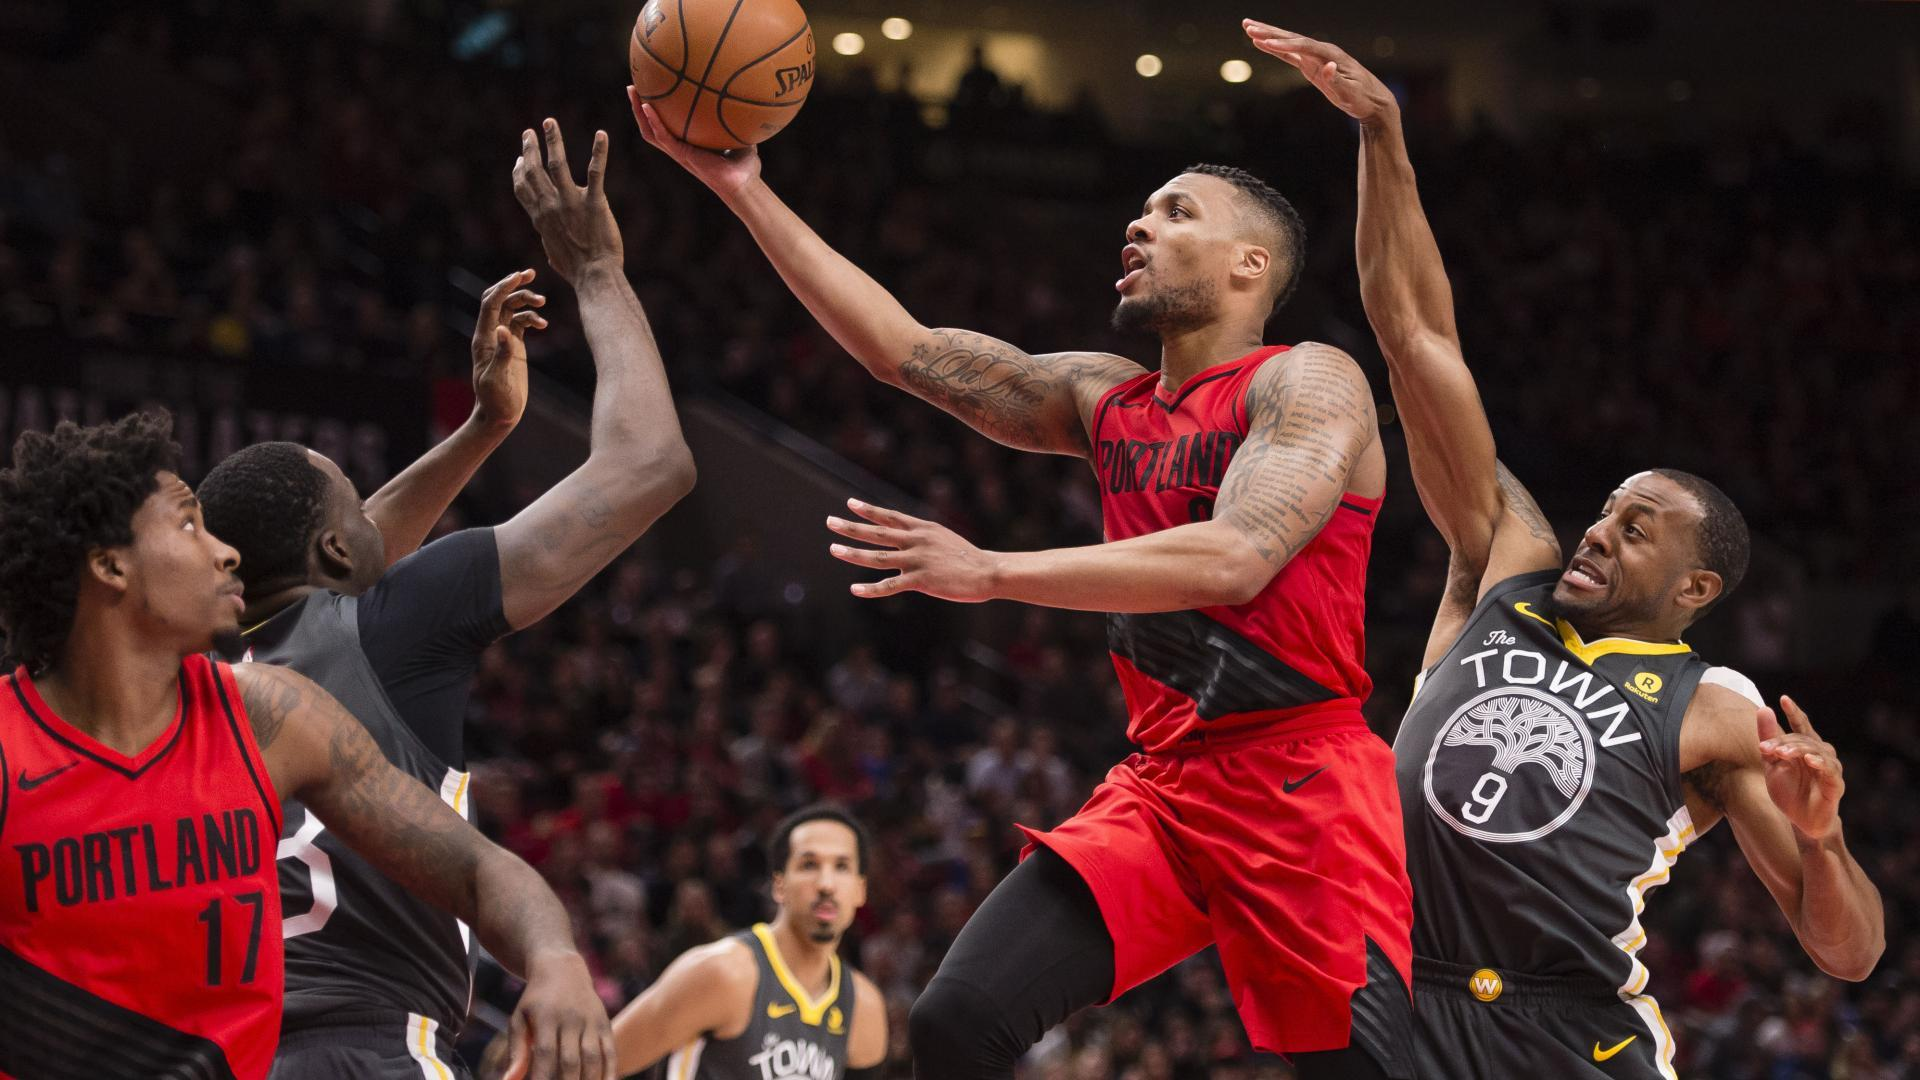 Damian Lillard, Kevin Durant Show Scoring Touch As NBA All-Star 2018 Nears